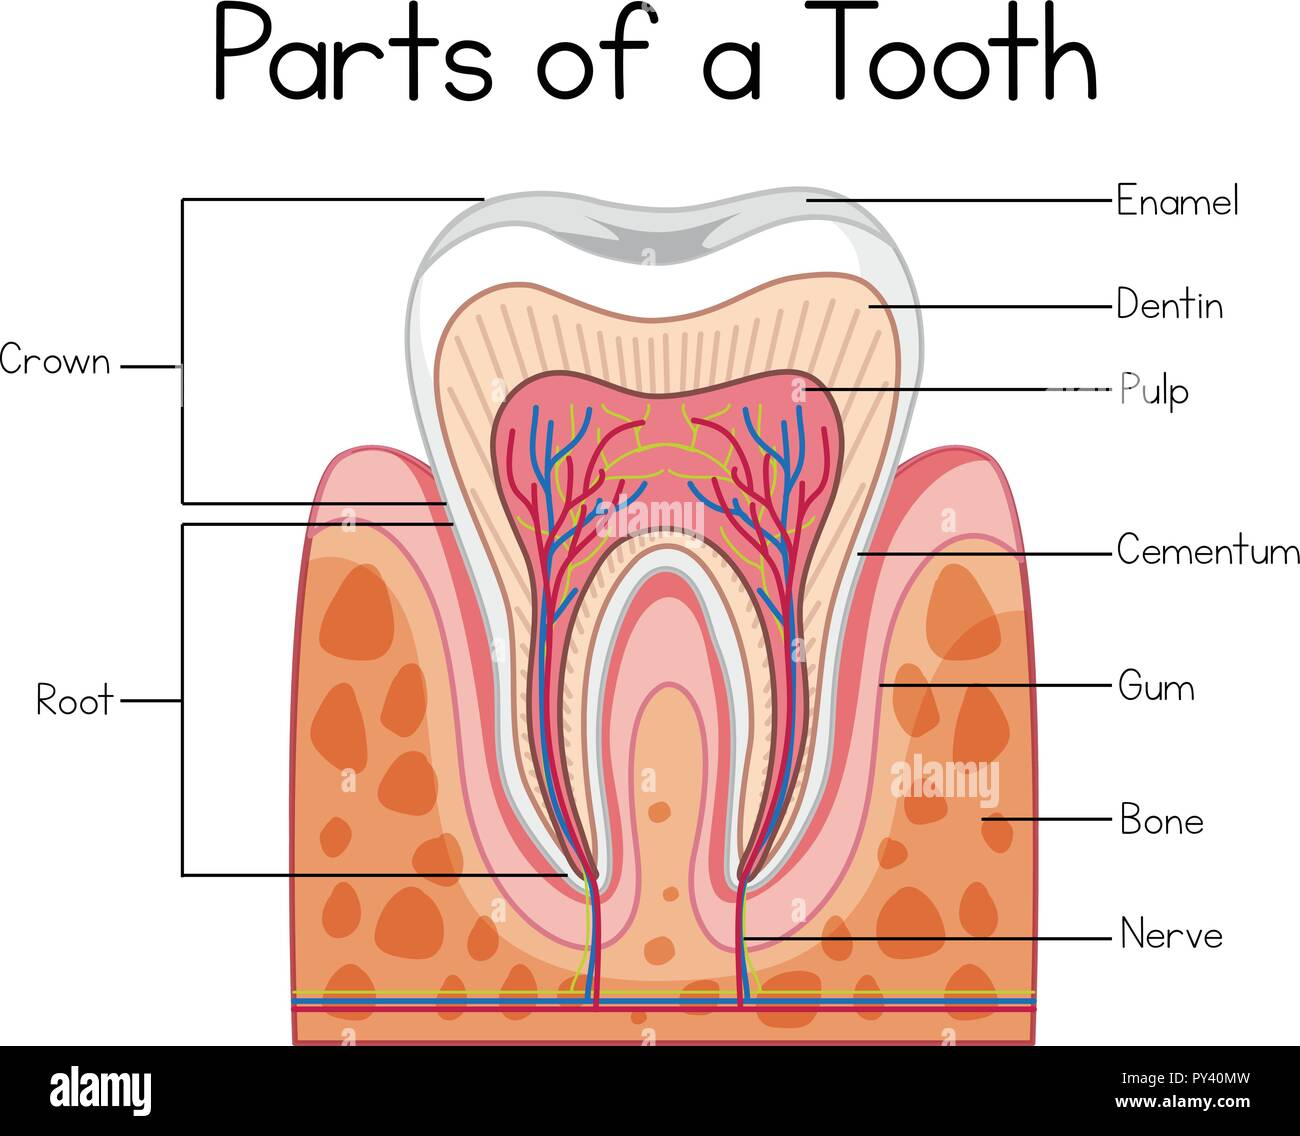 hight resolution of parts of a human tooth illustration stock image